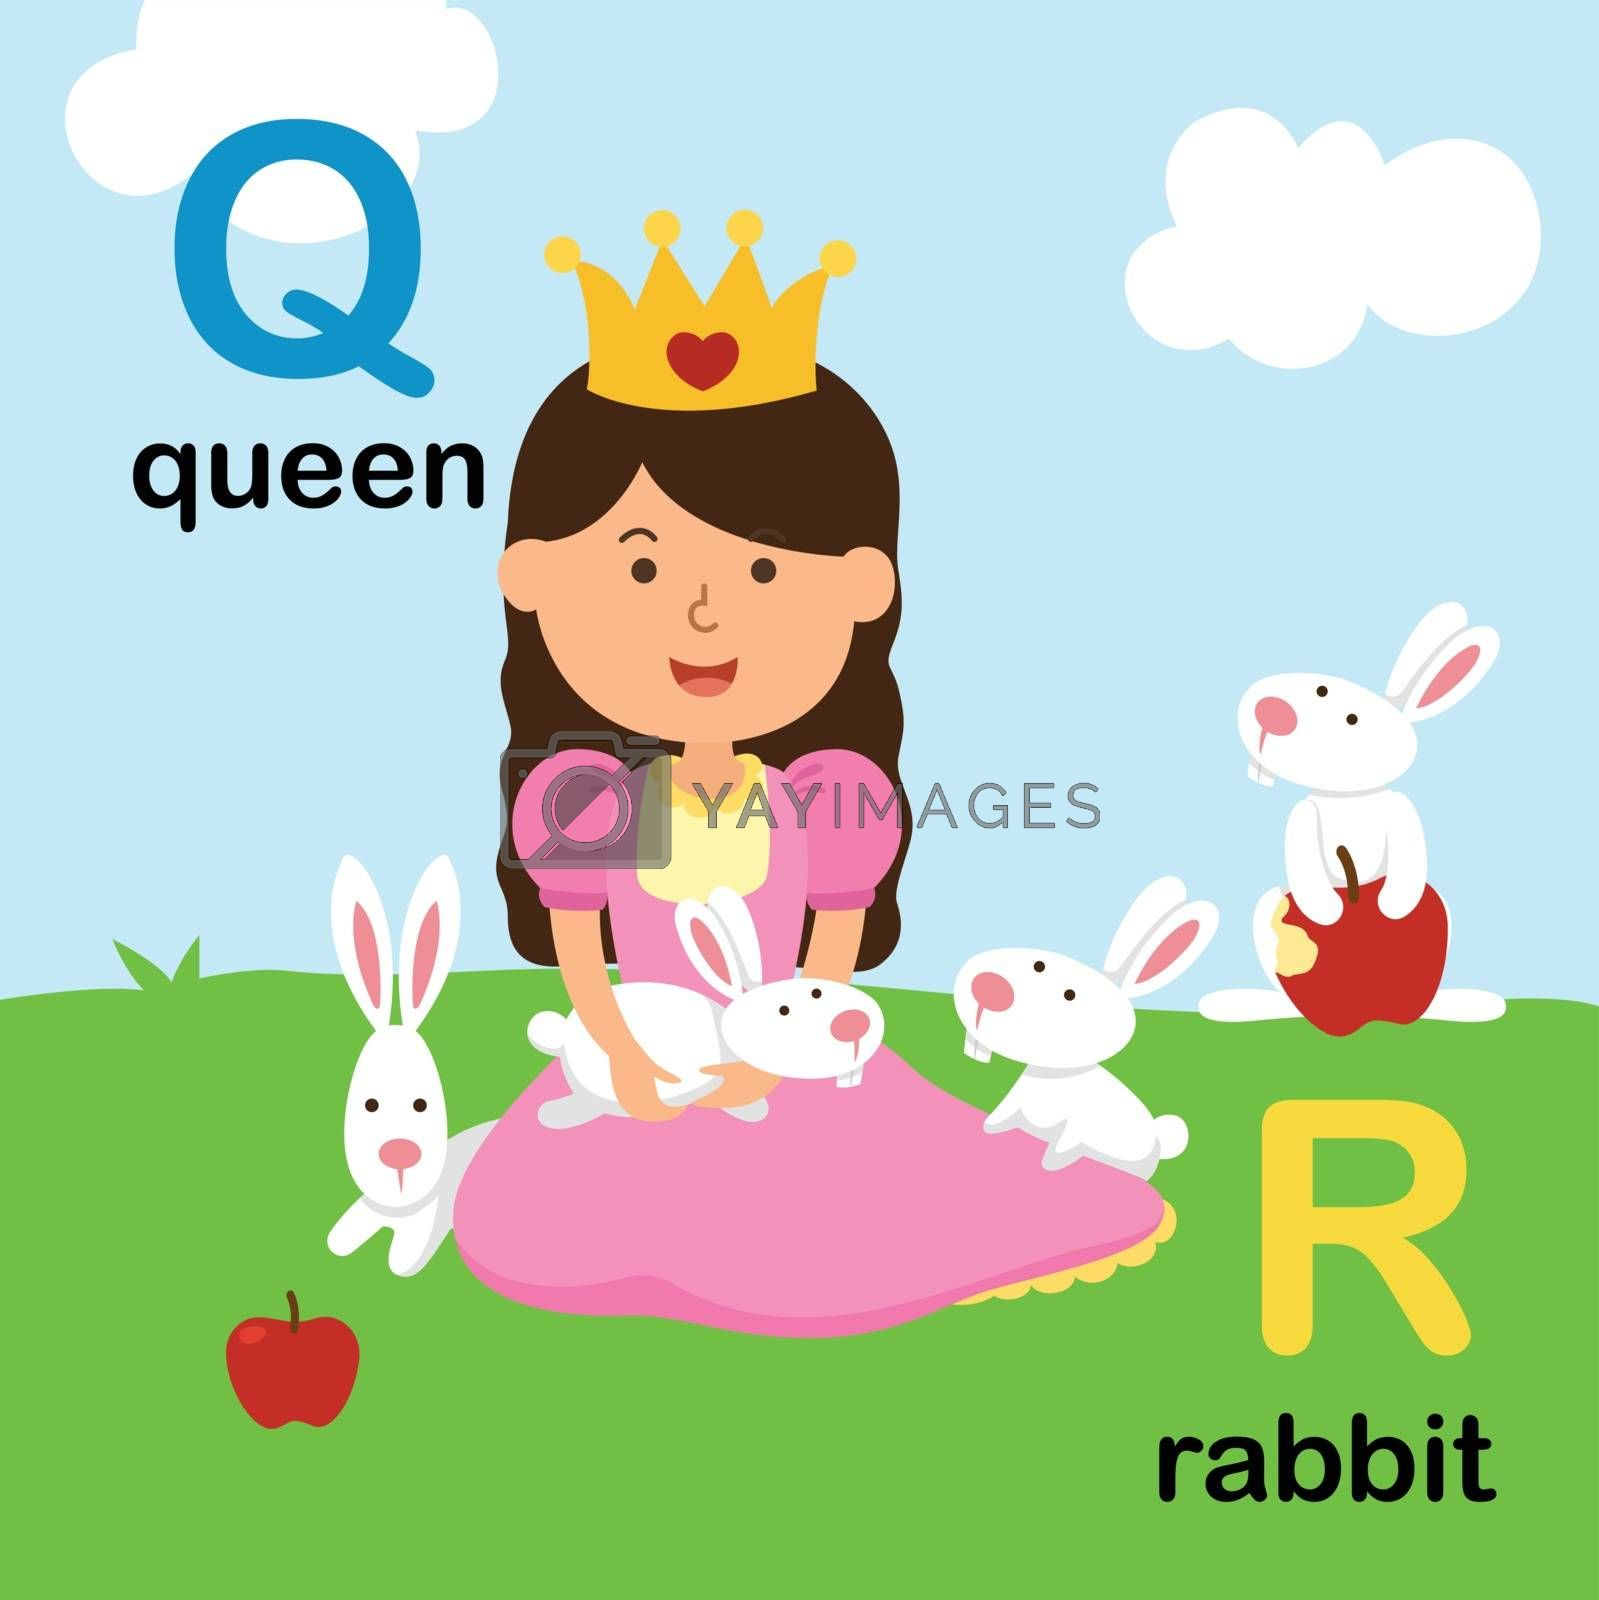 Alphabet Letter Q-queen,R-rabbit,vector illustration